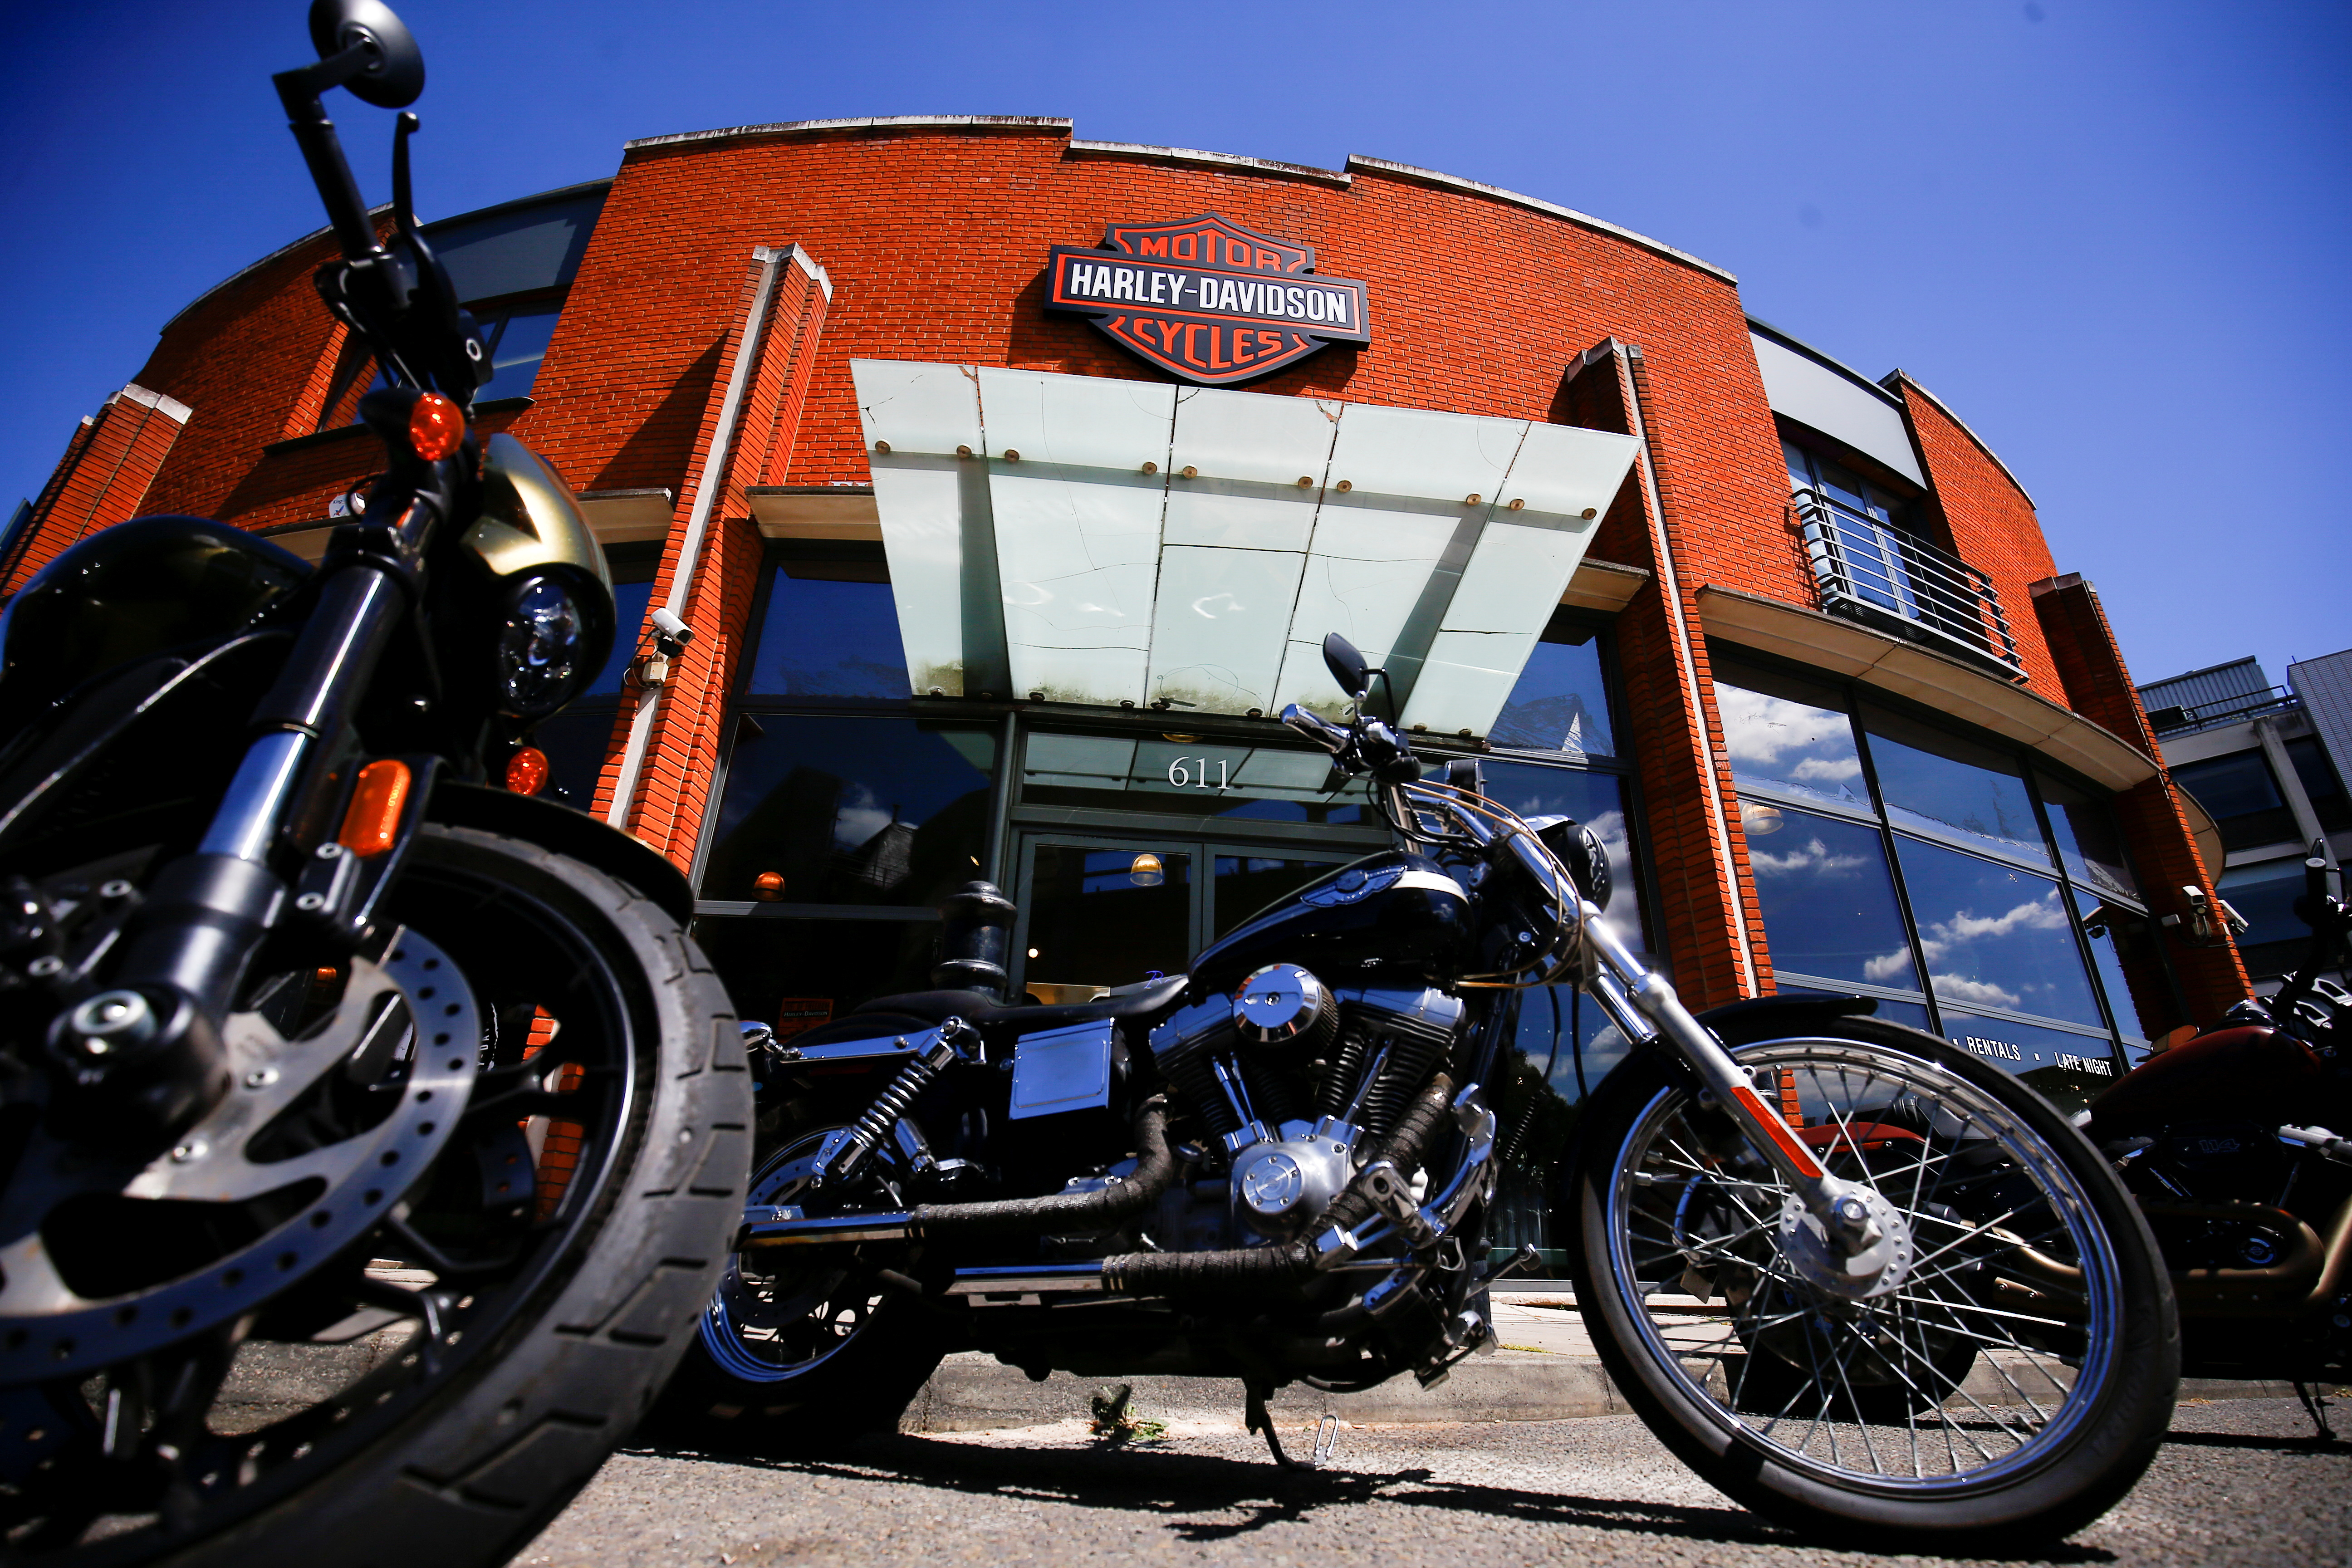 Harley Davidson motorcycles are displayed for sale at a showroom in London, Britain, June 22 2018. REUTERS/Henry Nicholls/File Photo